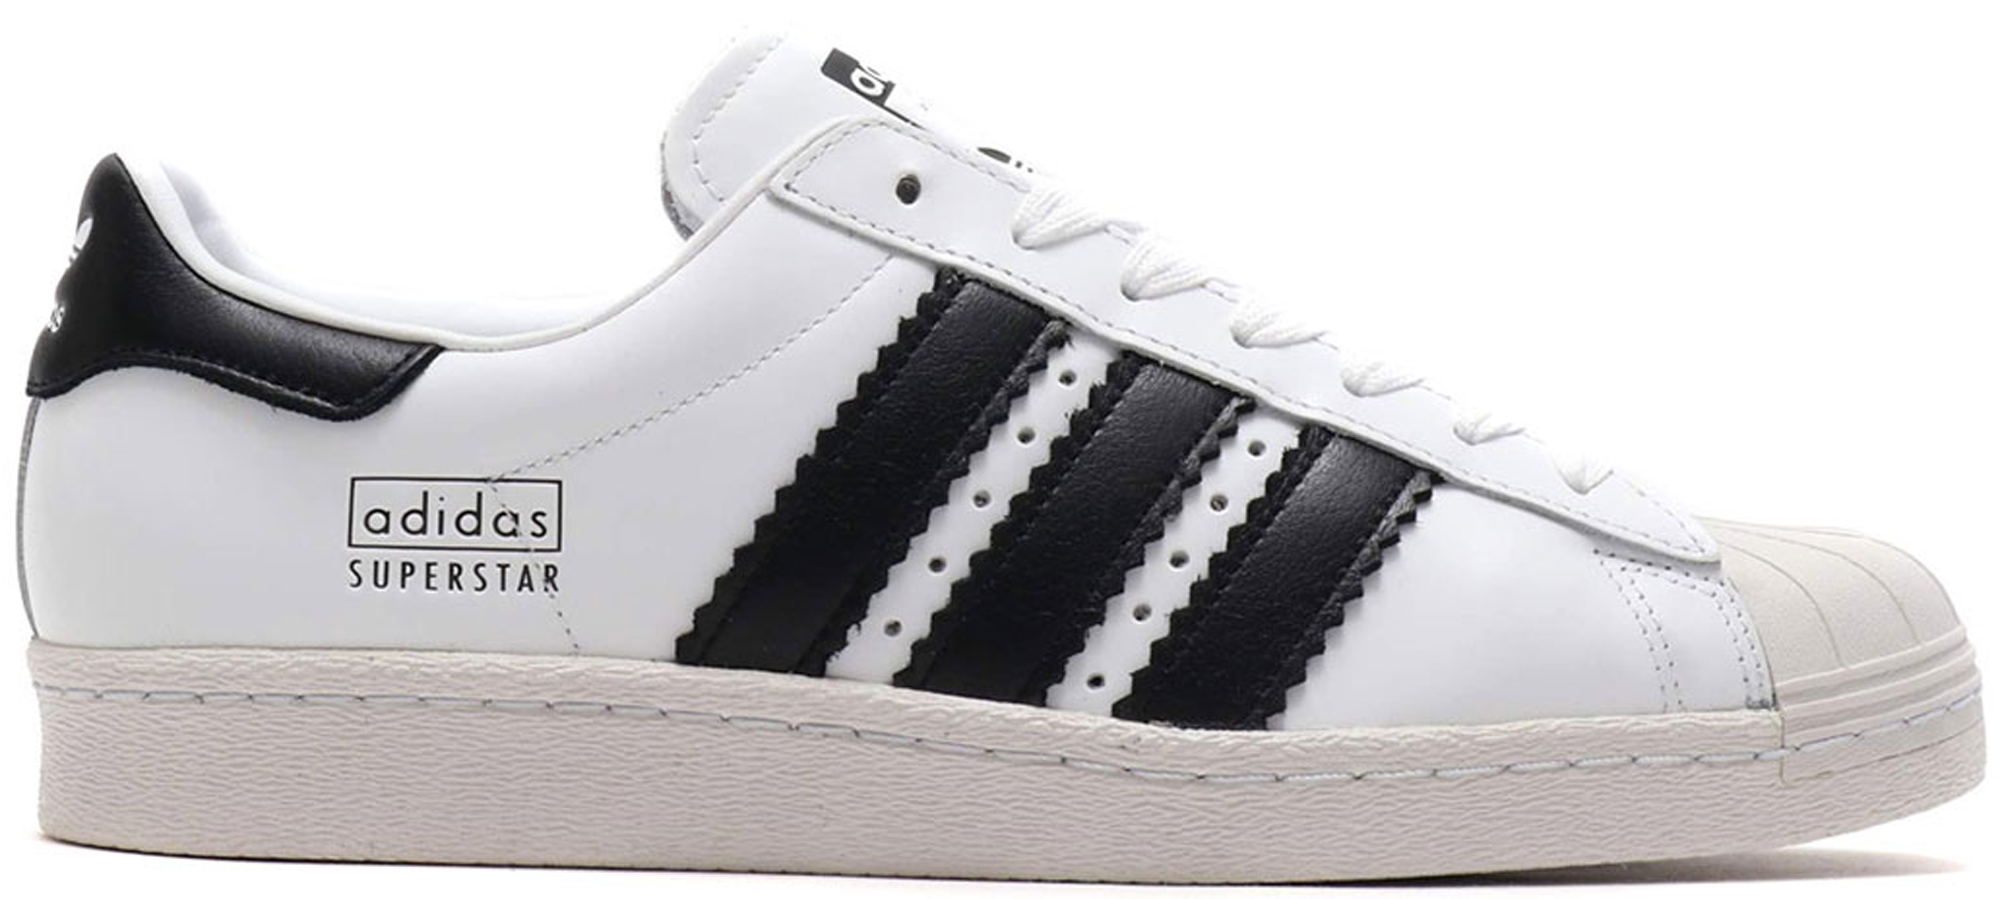 Lady's shoes [G61070] men's for Adidas superstar 80s for white black chalk 2 adidas Originals SUPERSTAR 80s